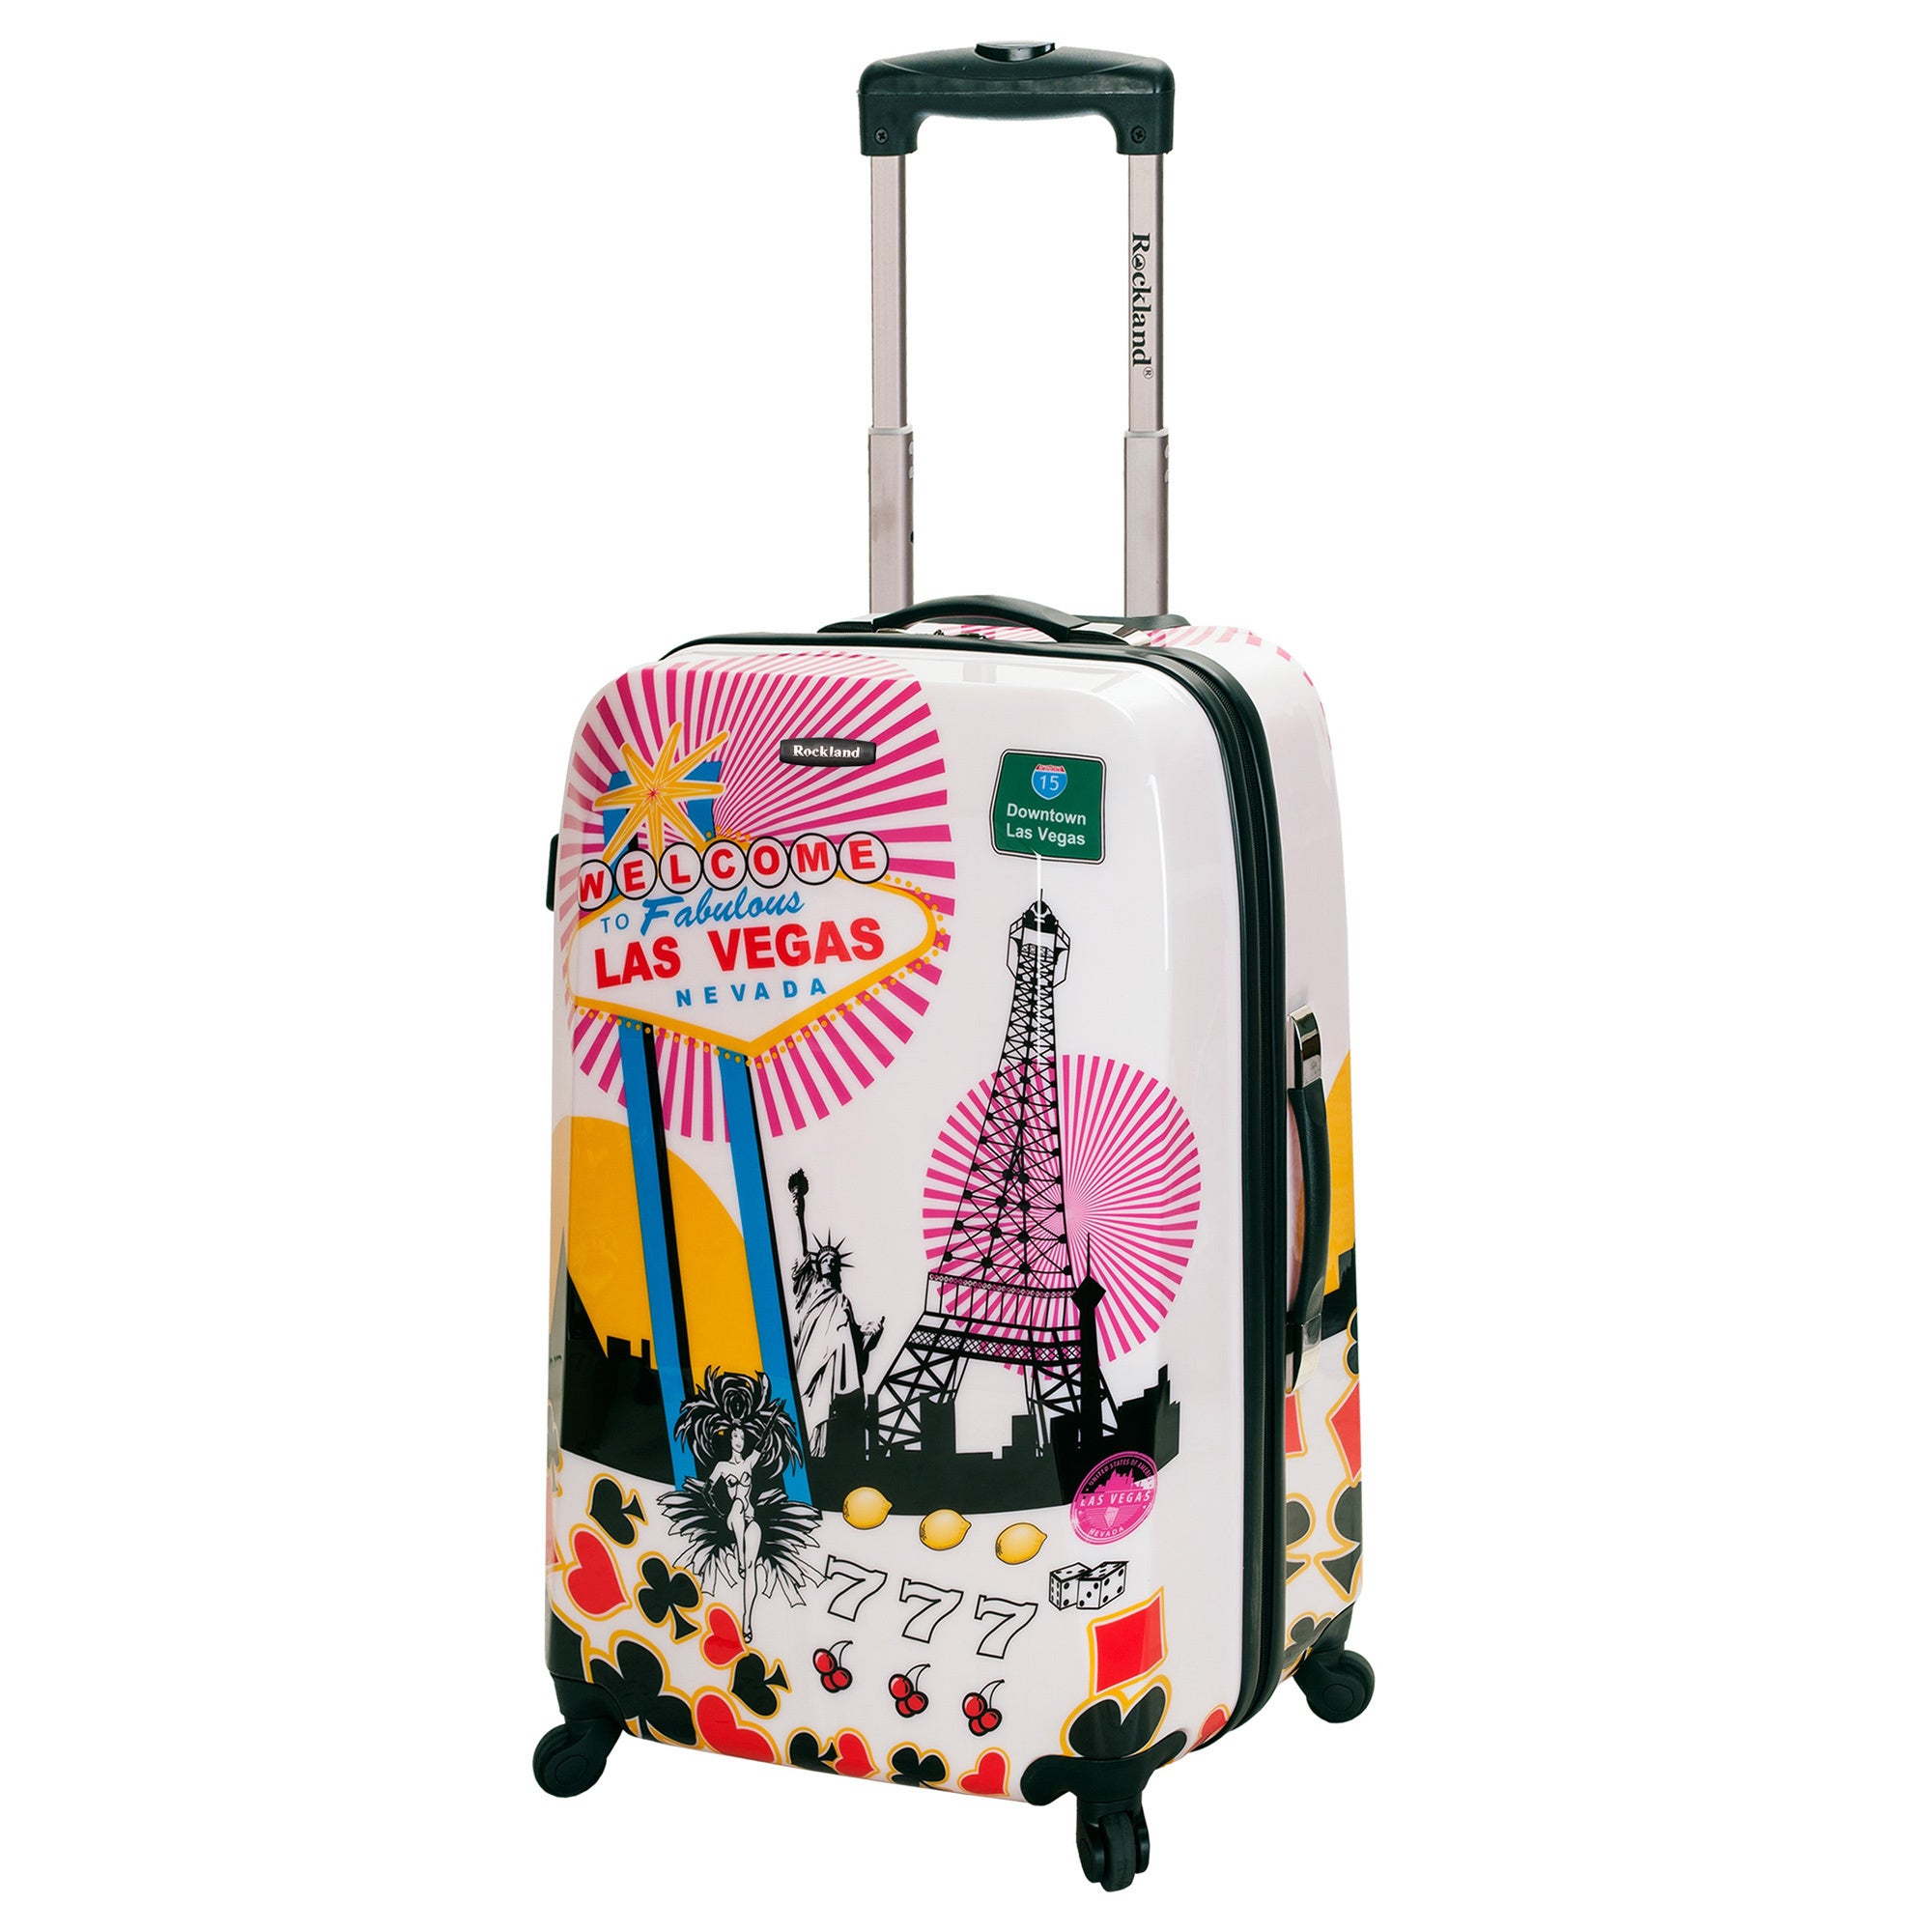 Rockland Las Vegas 20 Inch Lightweight Hardside Spinner Carry On Luggage Free Shipping Today 14961277